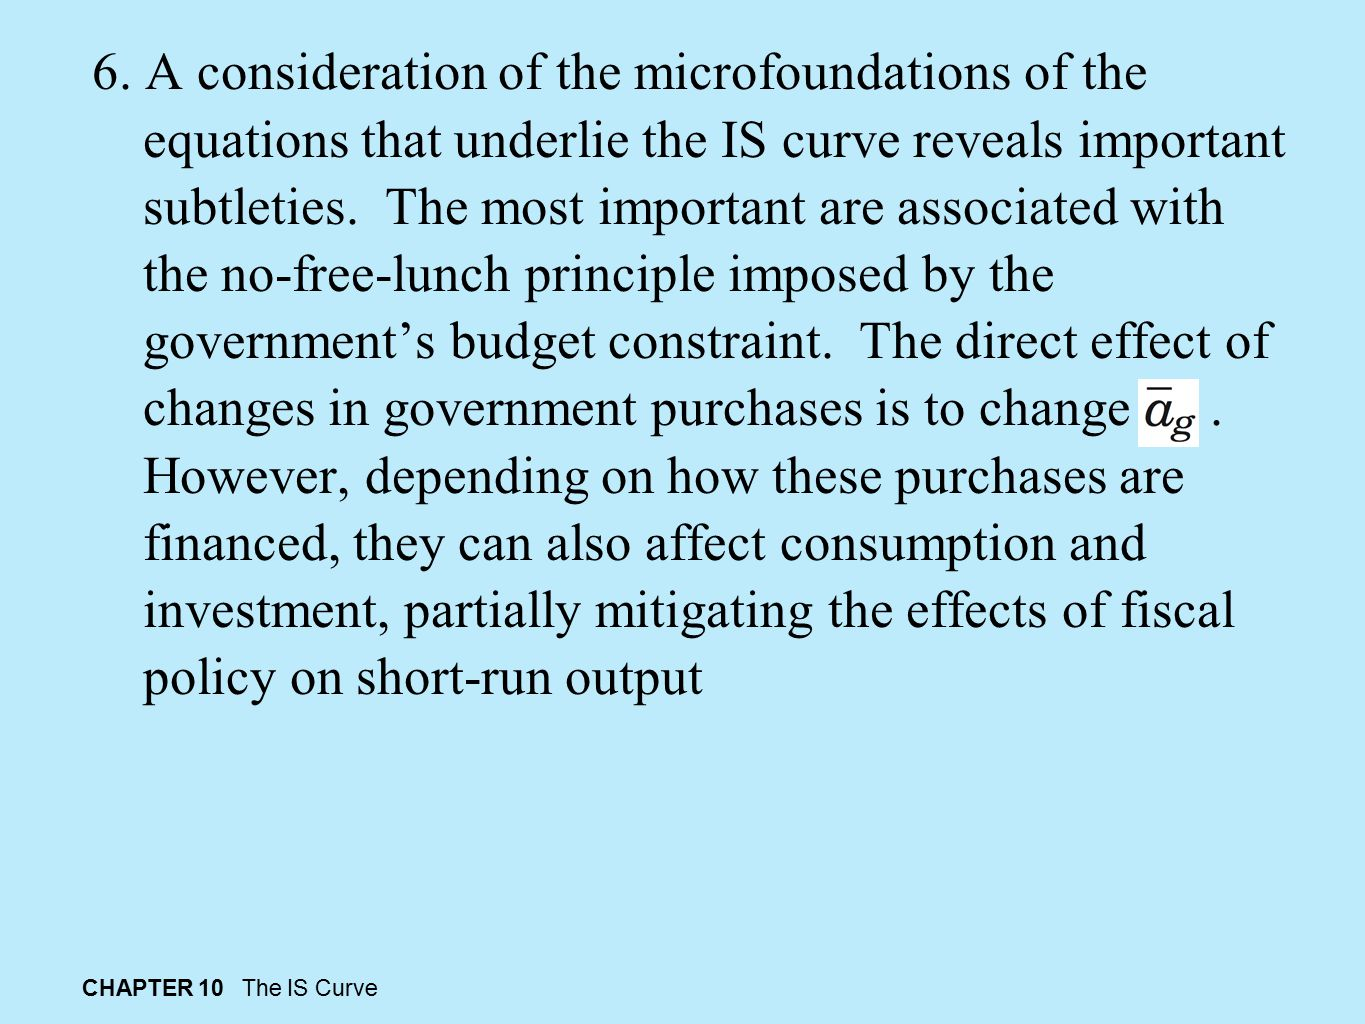 6. A consideration of the microfoundations of the equations that underlie the IS curve reveals important subtleties. The most important are associated with the no-free-lunch principle imposed by the government's budget constraint. The direct effect of changes in government purchases is to change . However, depending on how these purchases are financed, they can also affect consumption and investment, partially mitigating the effects of fiscal policy on short-run output